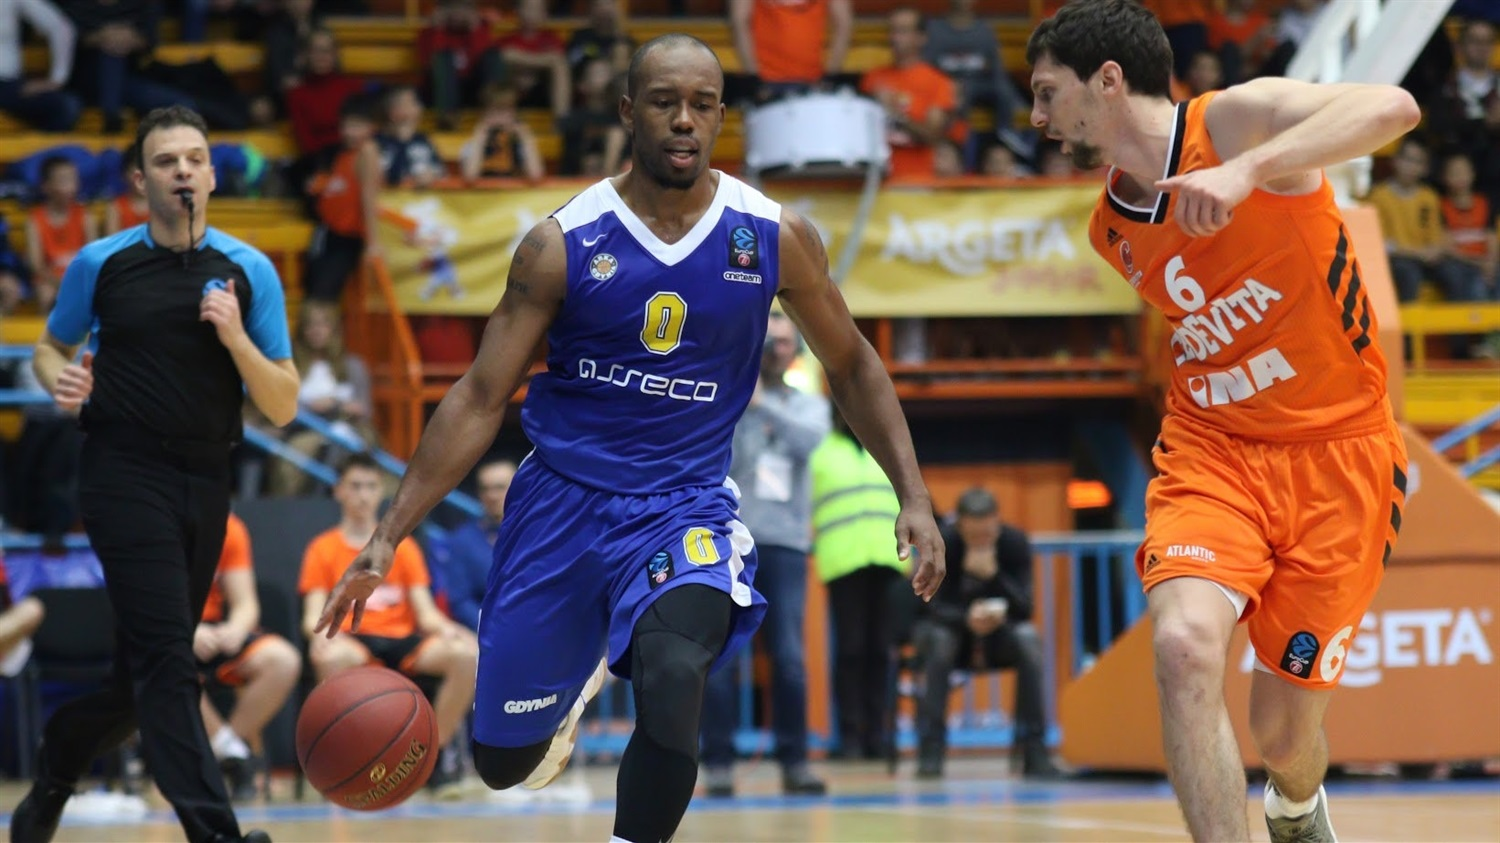 James Florence - Arka Gdynia (photo Cedevita) - EC18